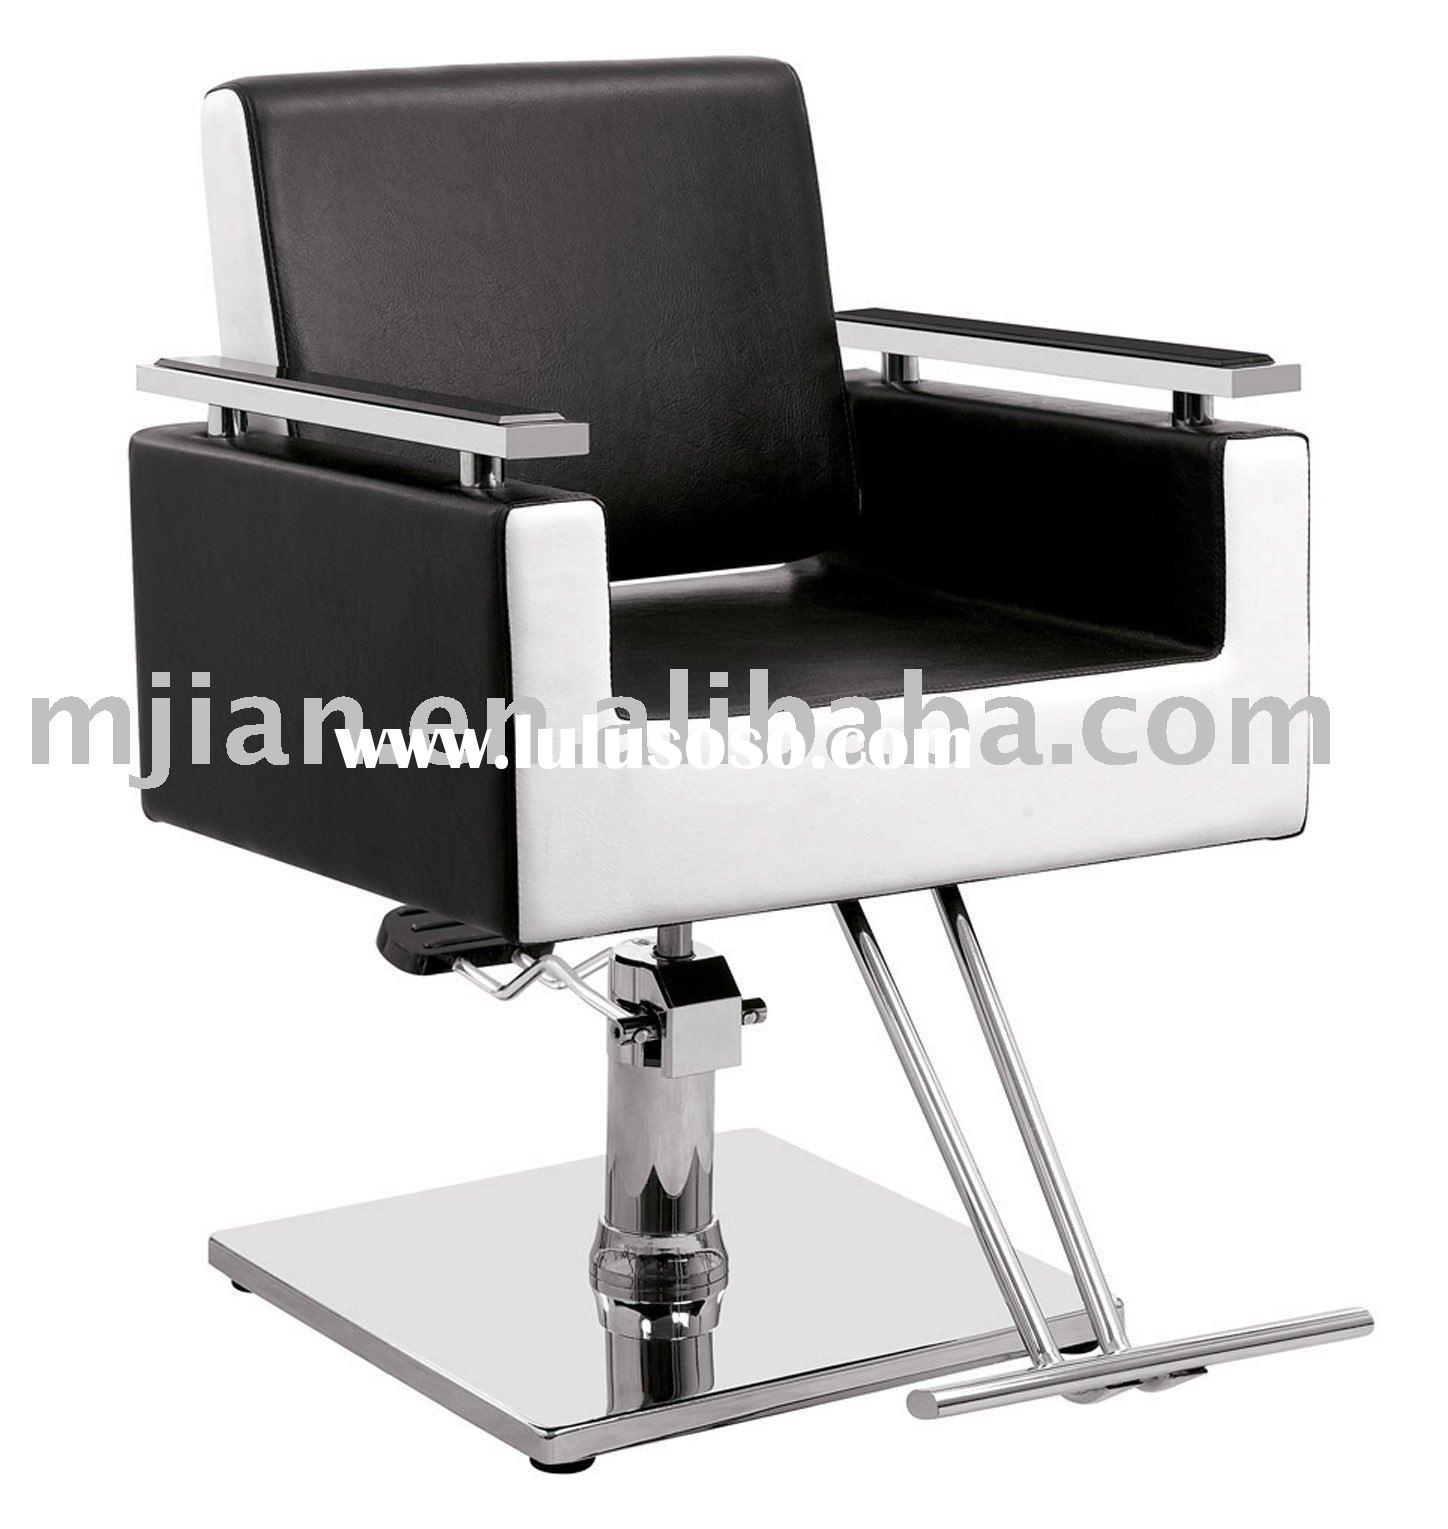 Hair salon furniture hair salon furniture manufacturers for Salon couch